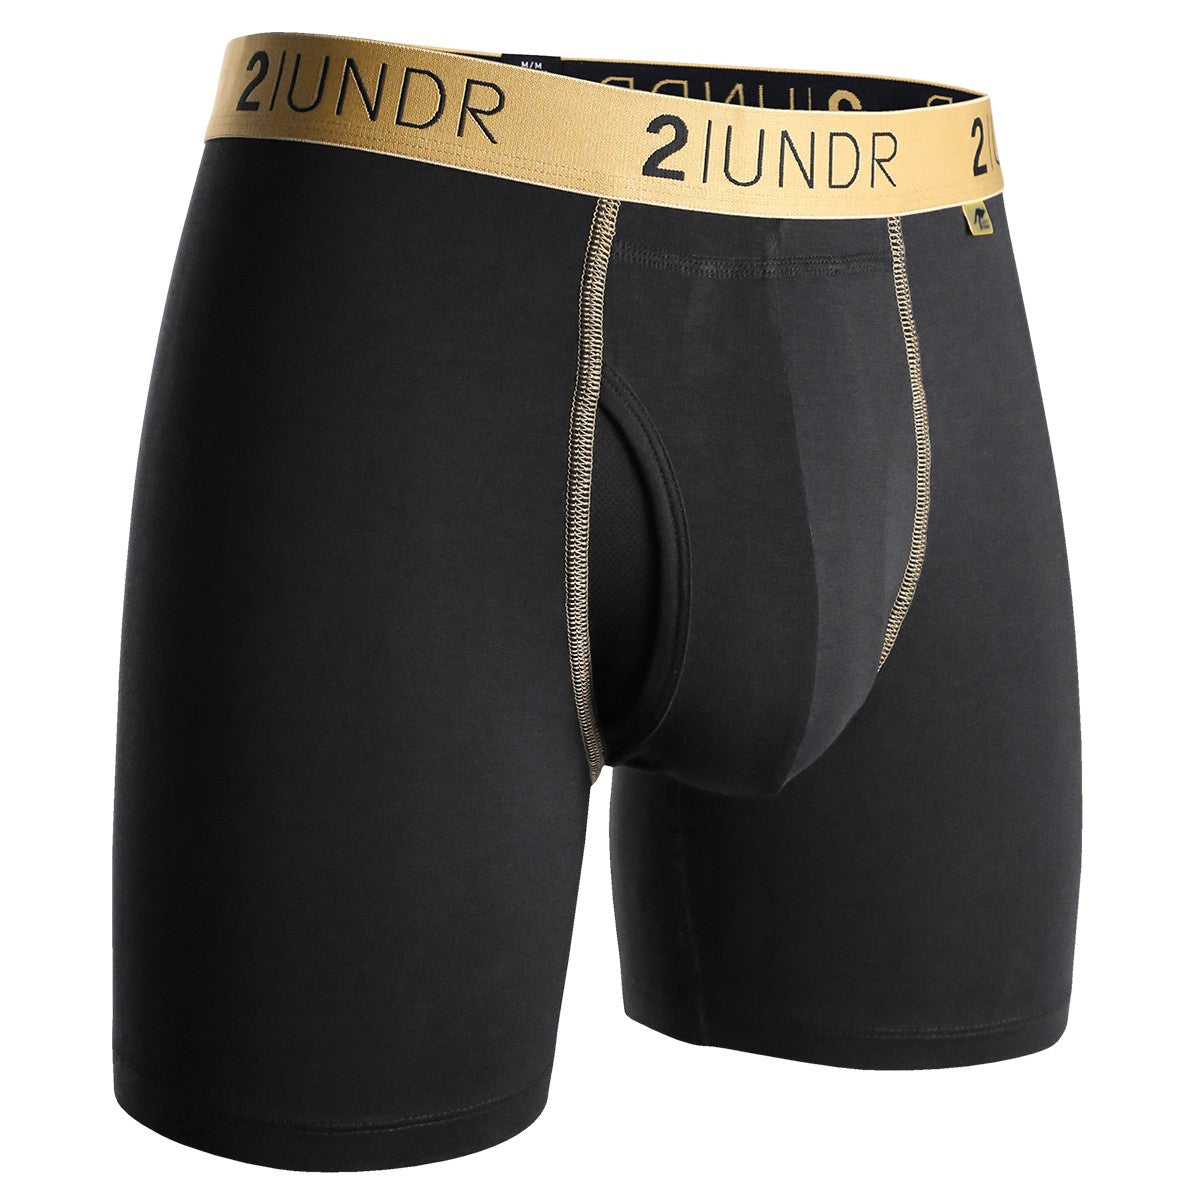 "Swing Shift 6"" Boxer Brief - Black & Gold"